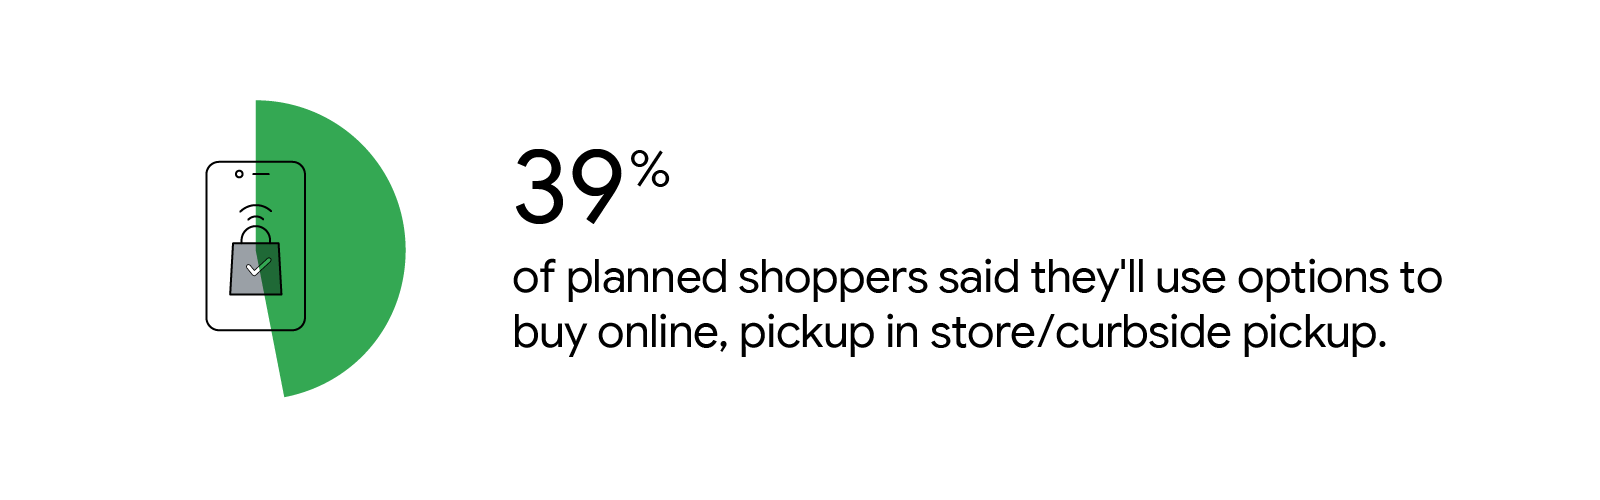 1859_inline_How-COVID-will-affect-holiday-shopping_02.png